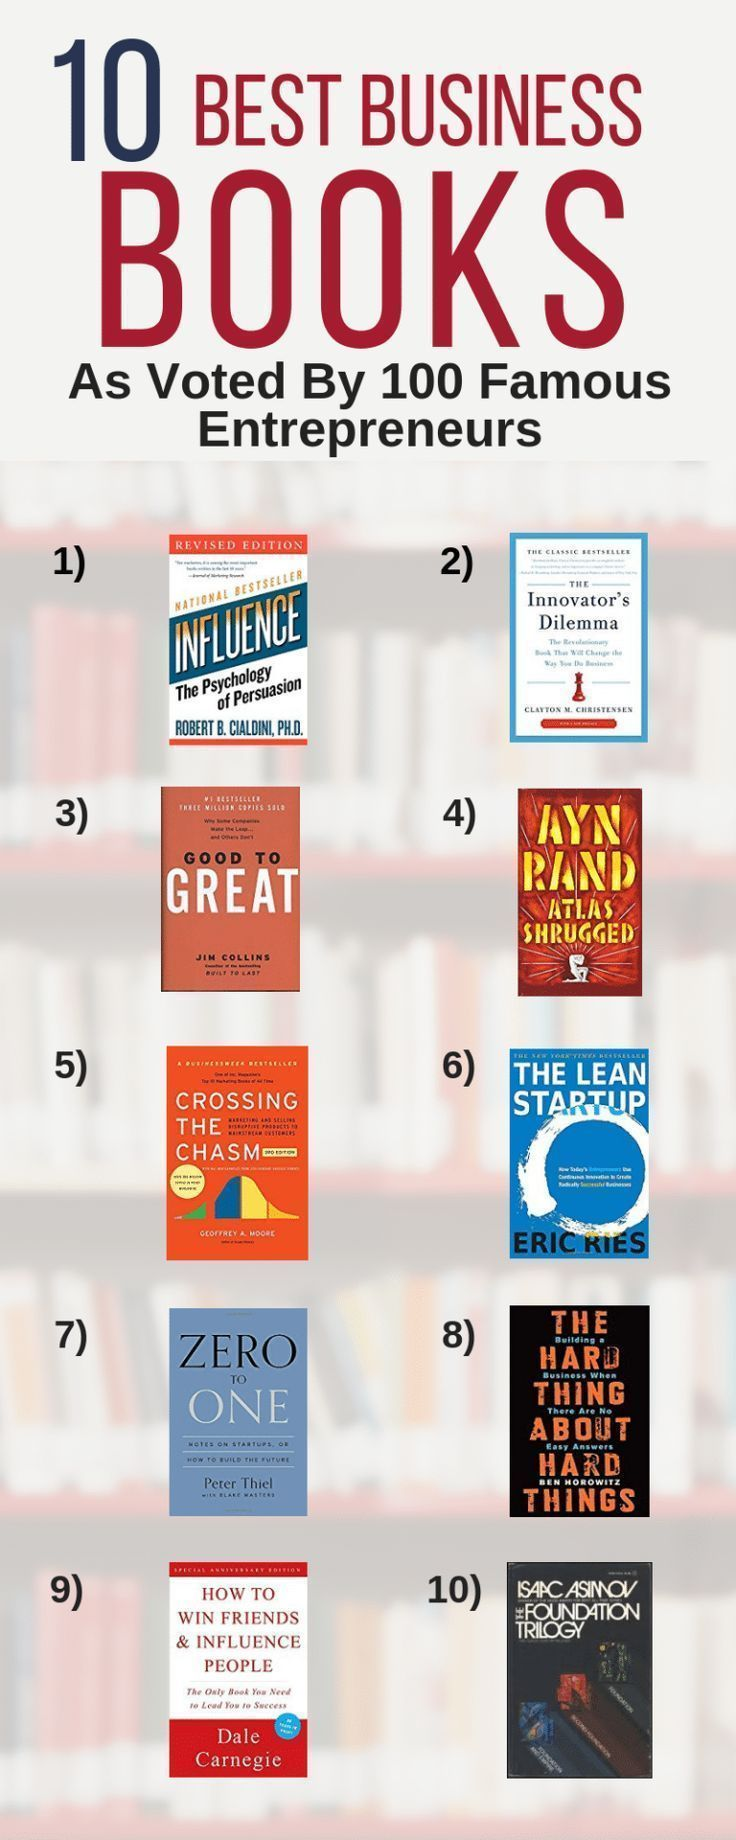 Best Business Books Voted On By 100 Top CEOs is part of Entrepreneur books, Top business books, Business books, Inspirational books, Good books, Books to read - Analyzing 100 book lists from the top CEOs, founders, and entrepreneurs to select the best business books of al time